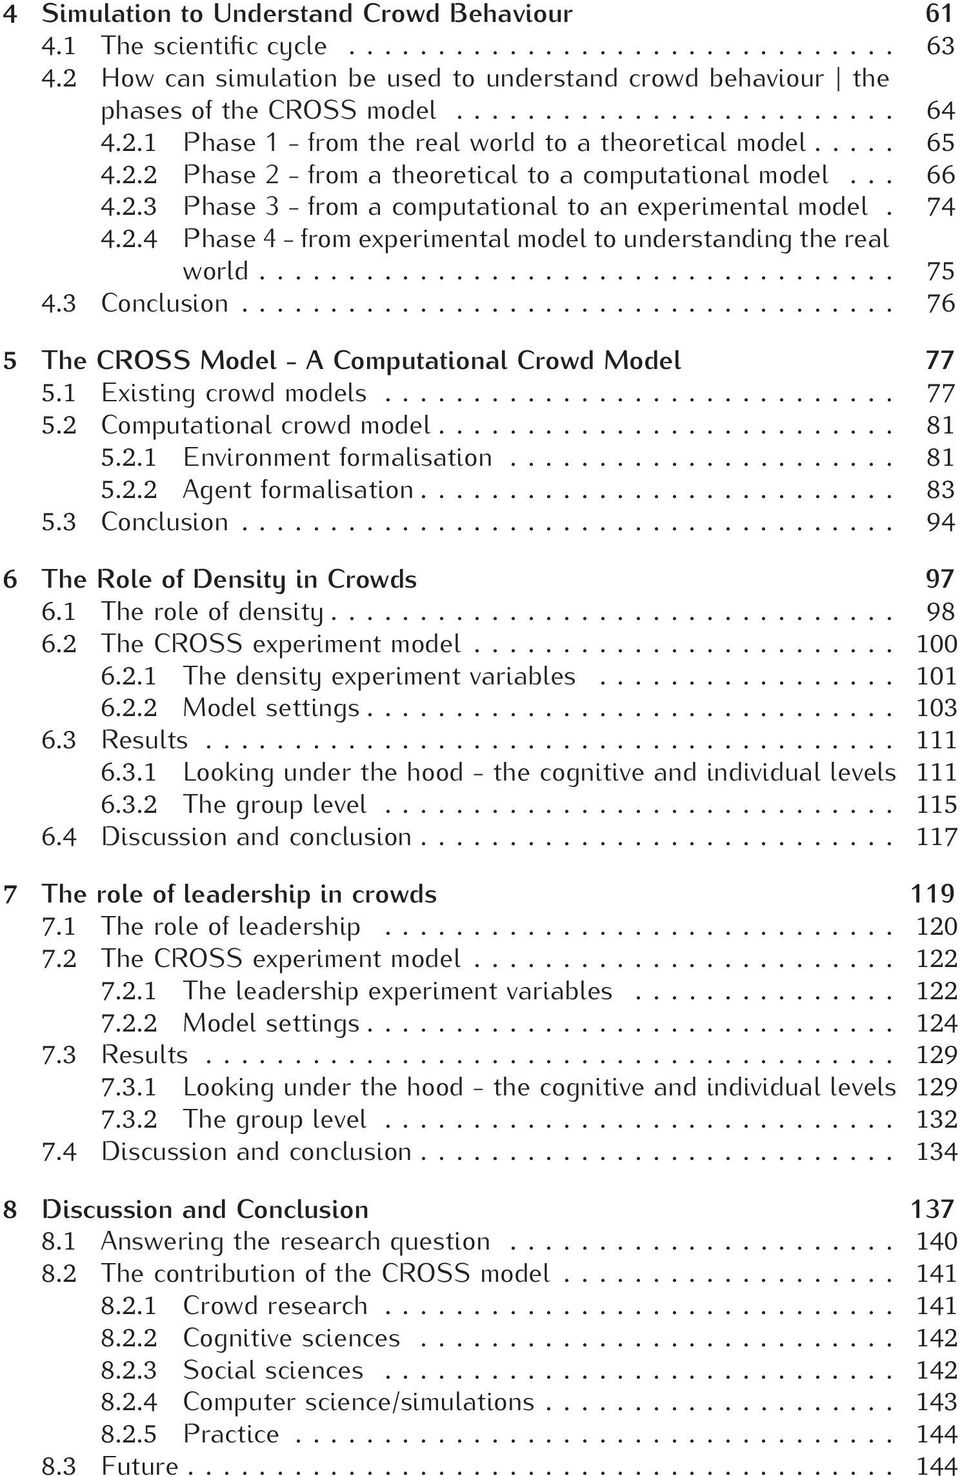 .. 75 4.3 Conclusion... 76 5 The CROSS Model -AComputational Crowd Model 77 5.1 Existing crowd models... 77 5.2 Computational crowd model... 81 5.2.1 Environment formalisation... 81 5.2.2 Agent formalisation.